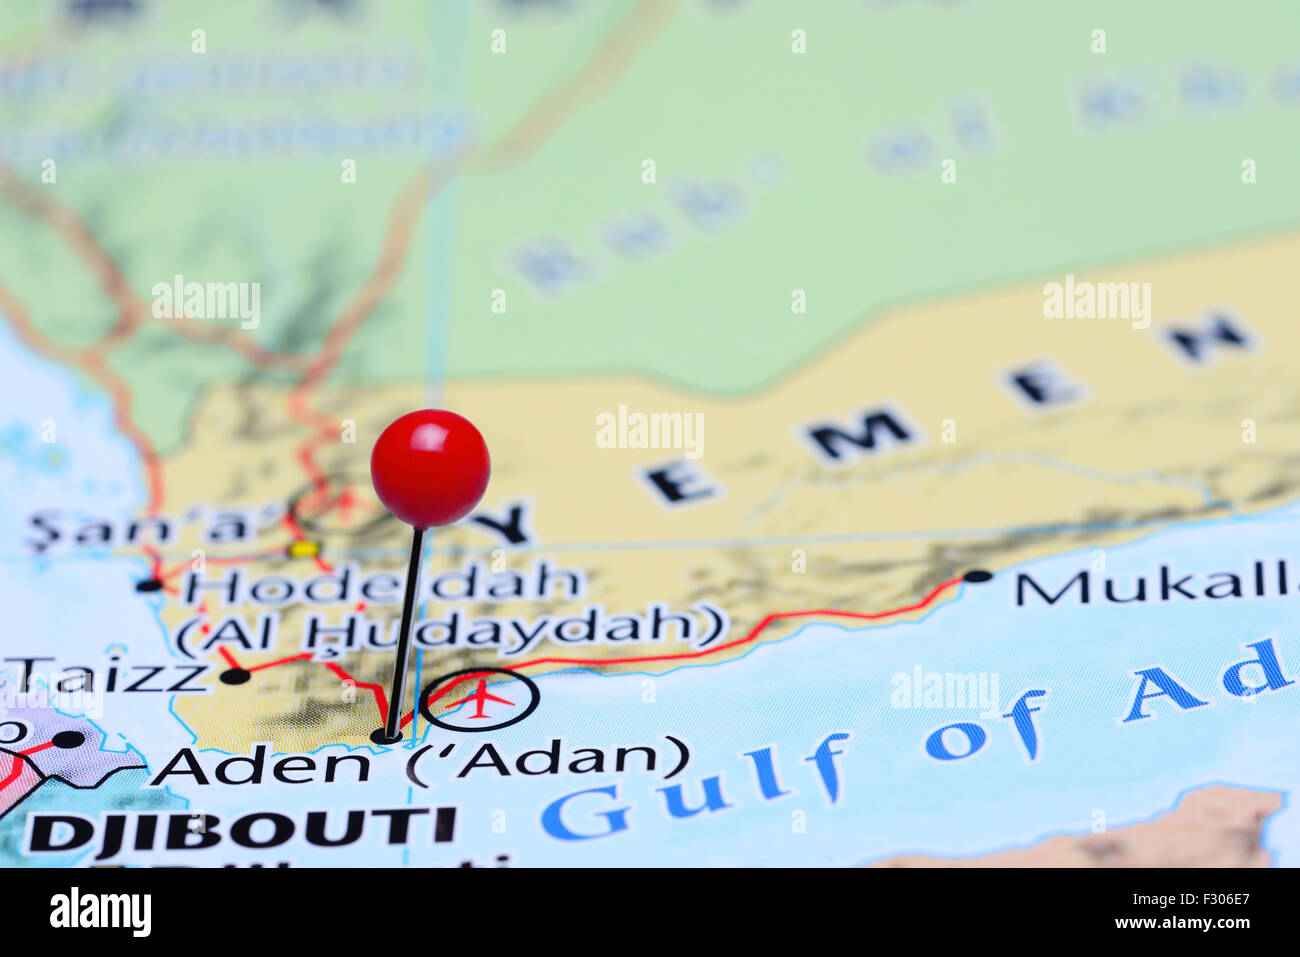 Aden pinned on a map of Asia - Stock Image